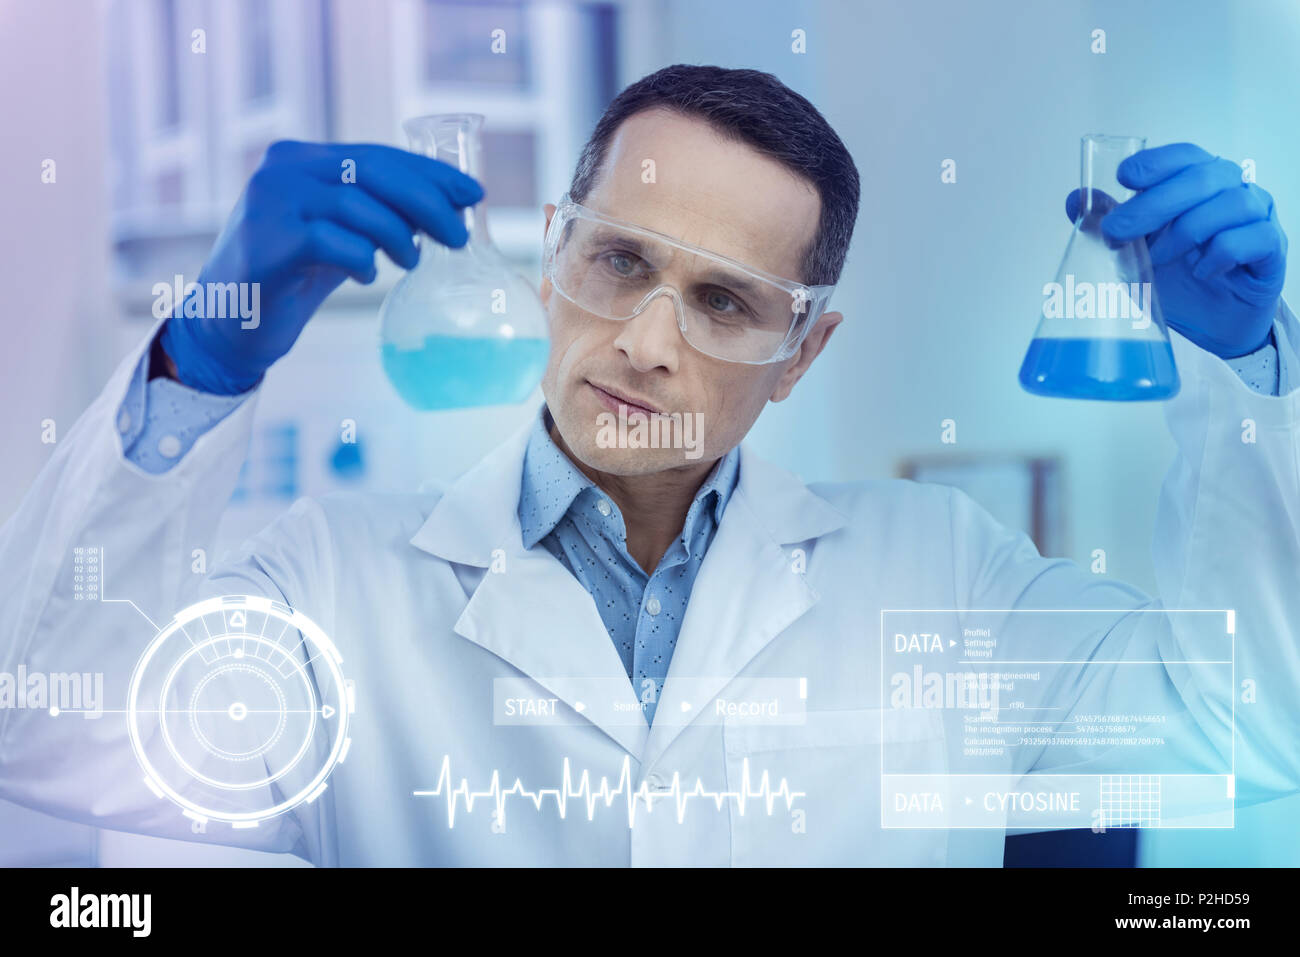 Careful scientist looking interested while comparing two liquids - Stock Image